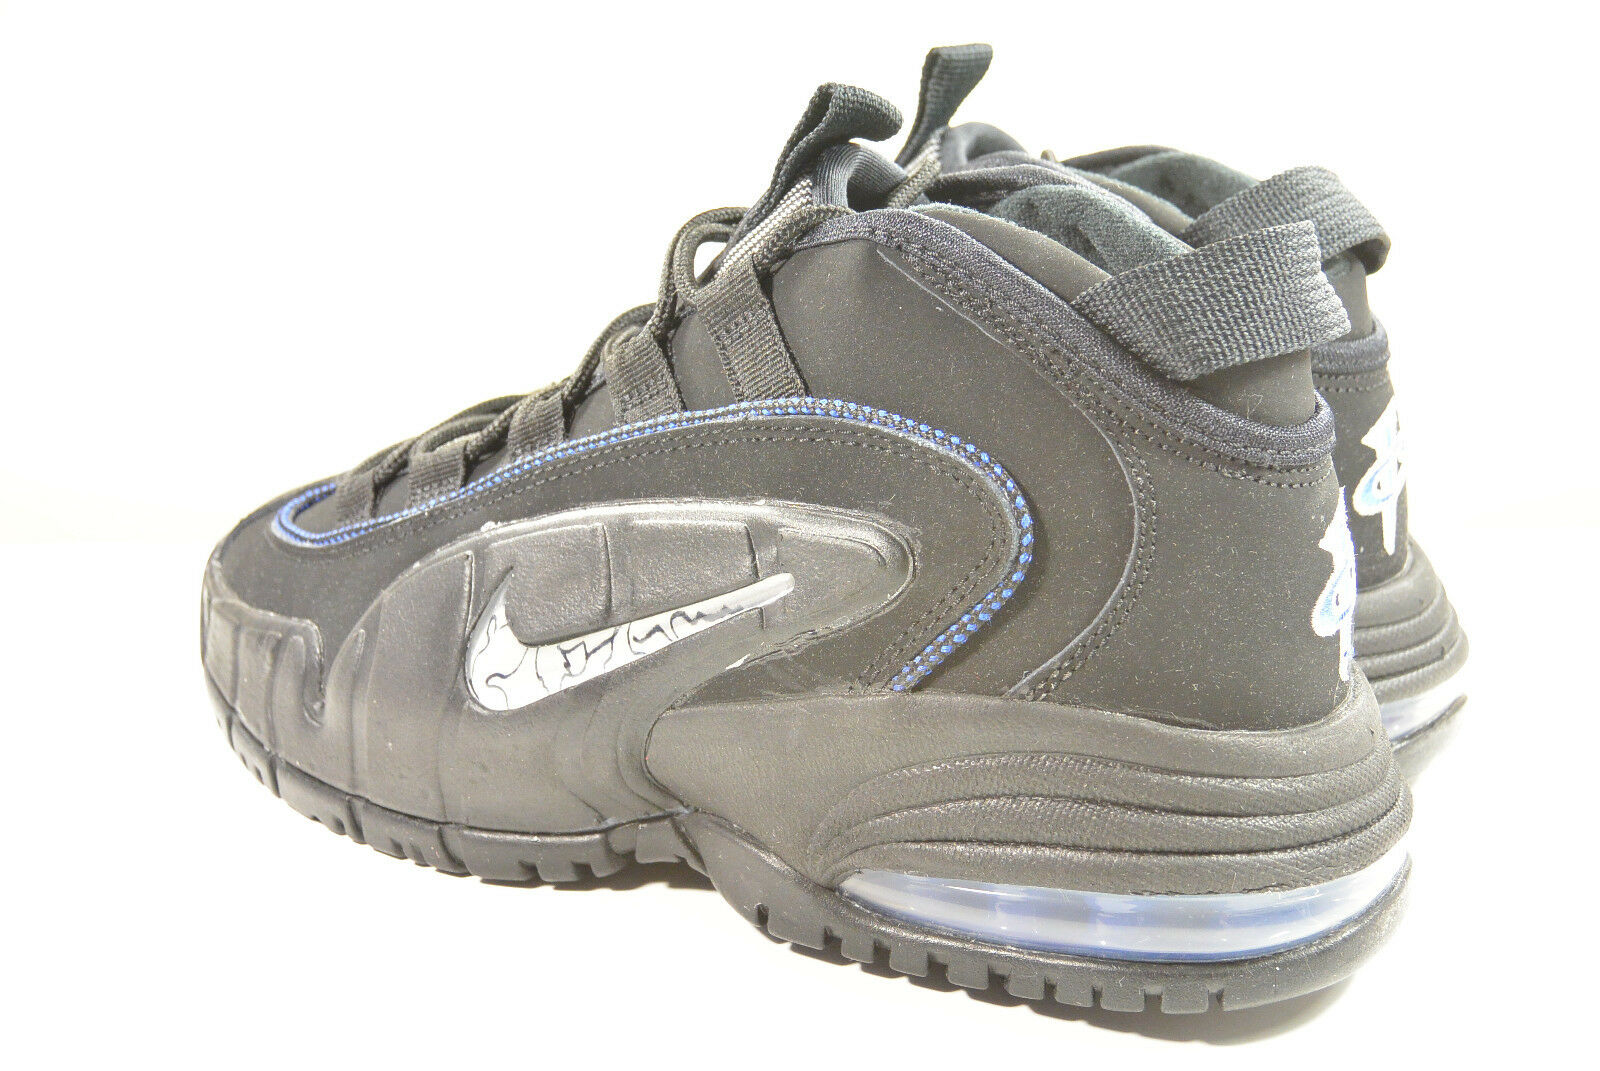 DS NIKE 2014 AIR MAX PENNY 1 I ALL-STAR GAME ROYAL 6.5Y BAKIN FORCE 2 3 RETRO OG